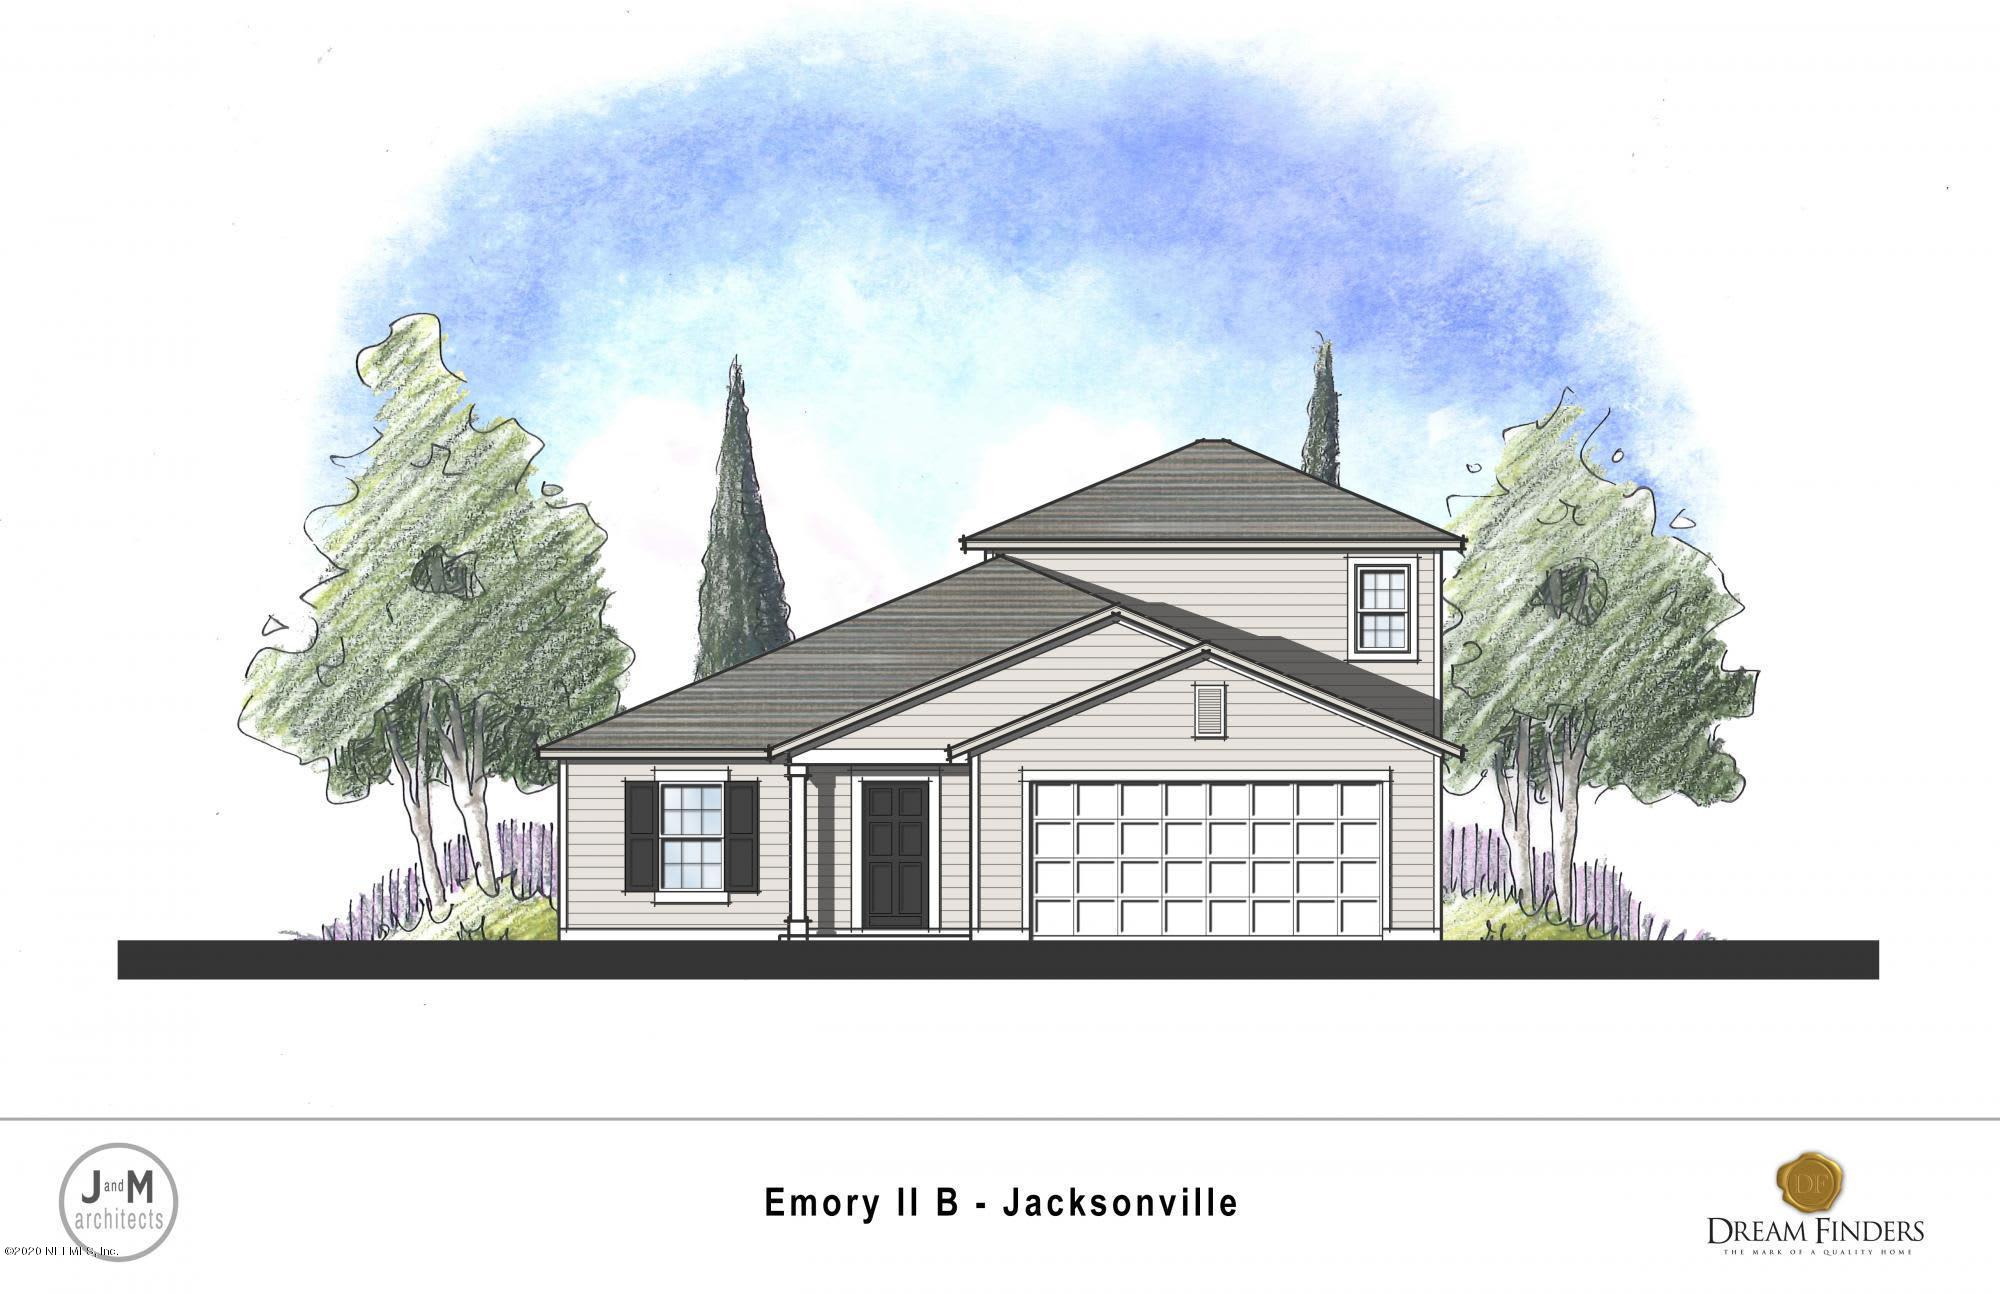 41 HAMPSTED, ST AUGUSTINE, FLORIDA 32092, 3 Bedrooms Bedrooms, ,3 BathroomsBathrooms,Residential,For sale,HAMPSTED,1053169